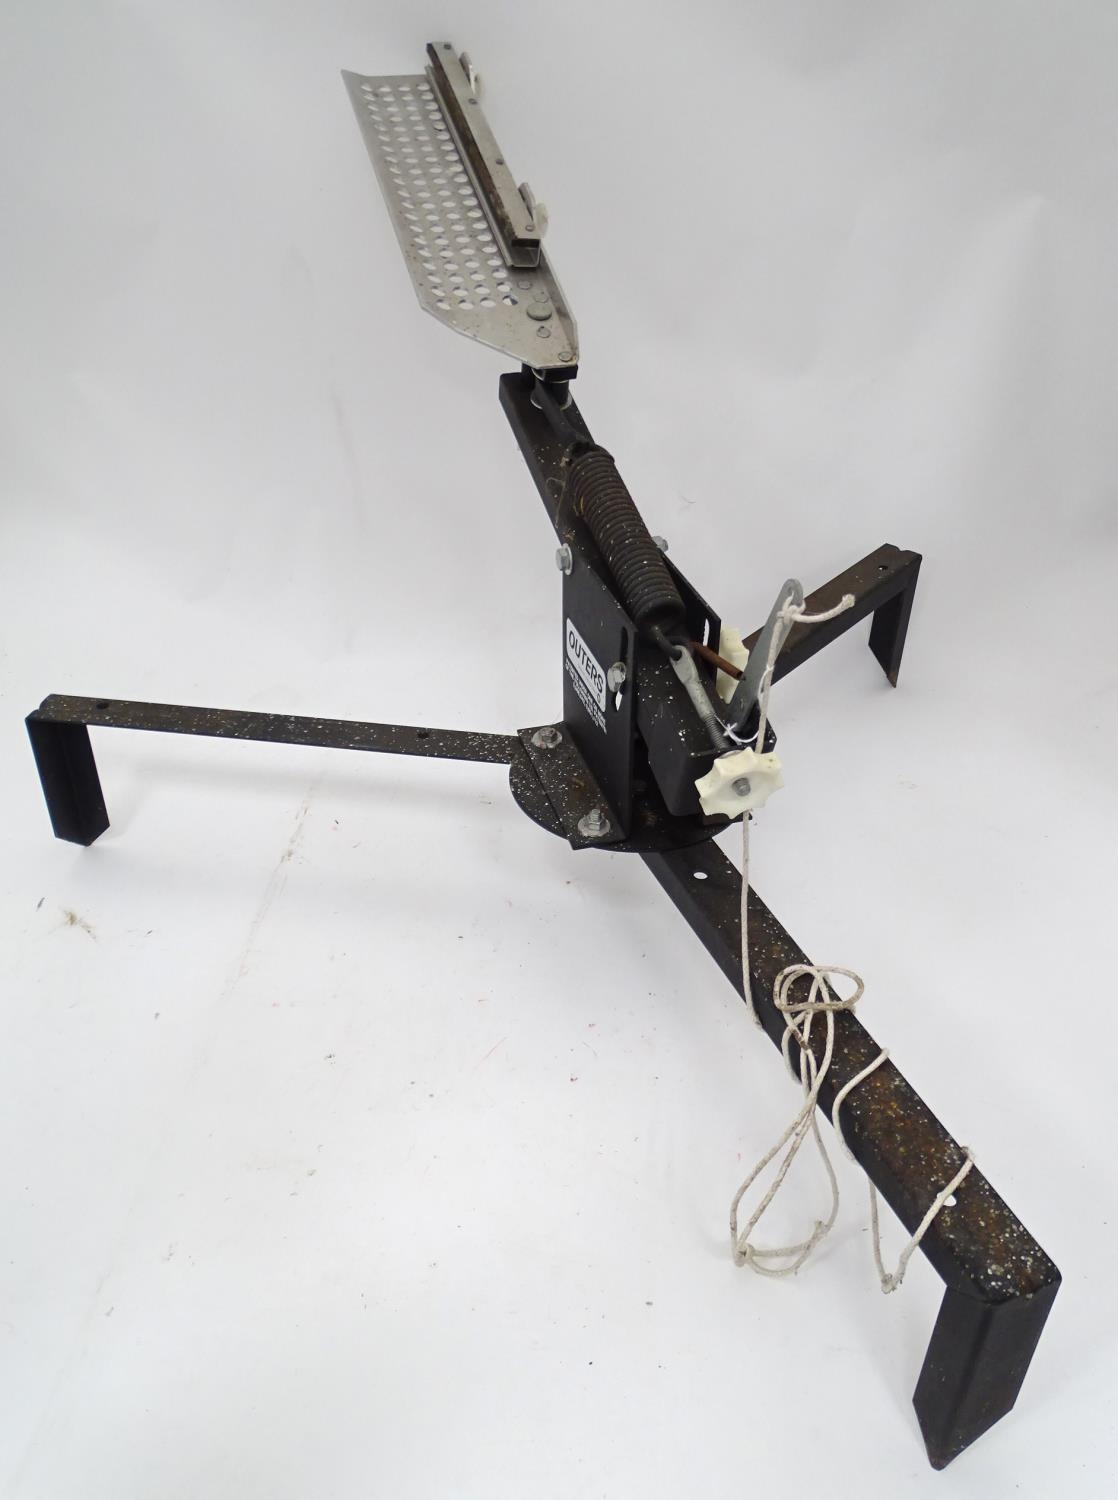 An American clay pigeon trap, maker Outers Please Note - we do not make reference to the condition